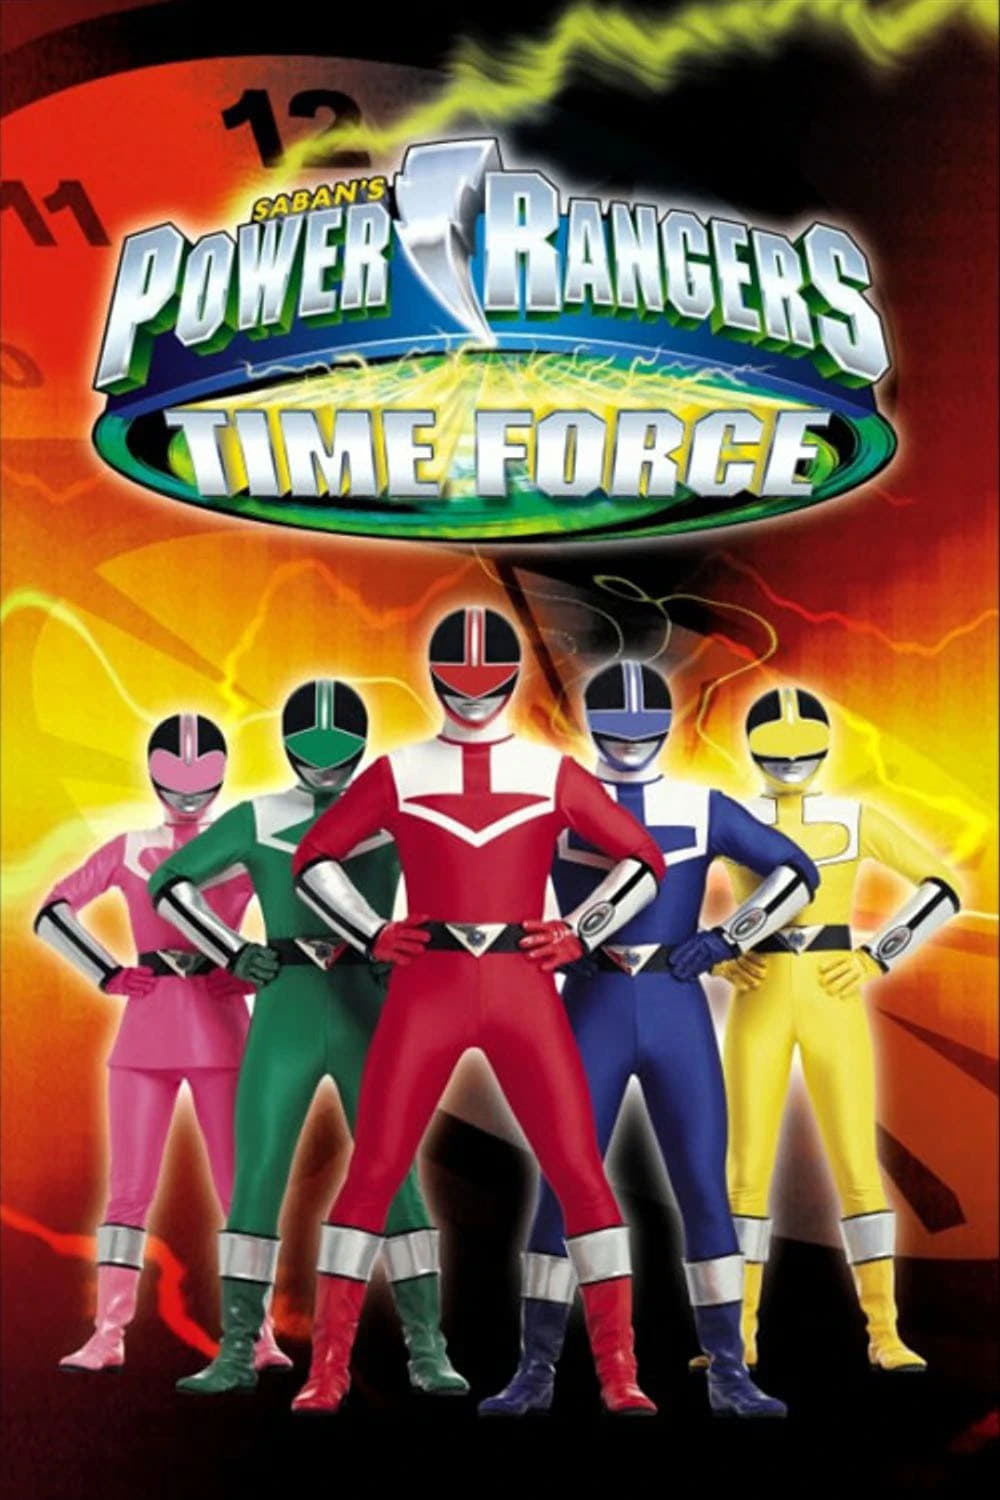 Power Rangers Time Force - Quantum Ranger: Clash for Control (2001)